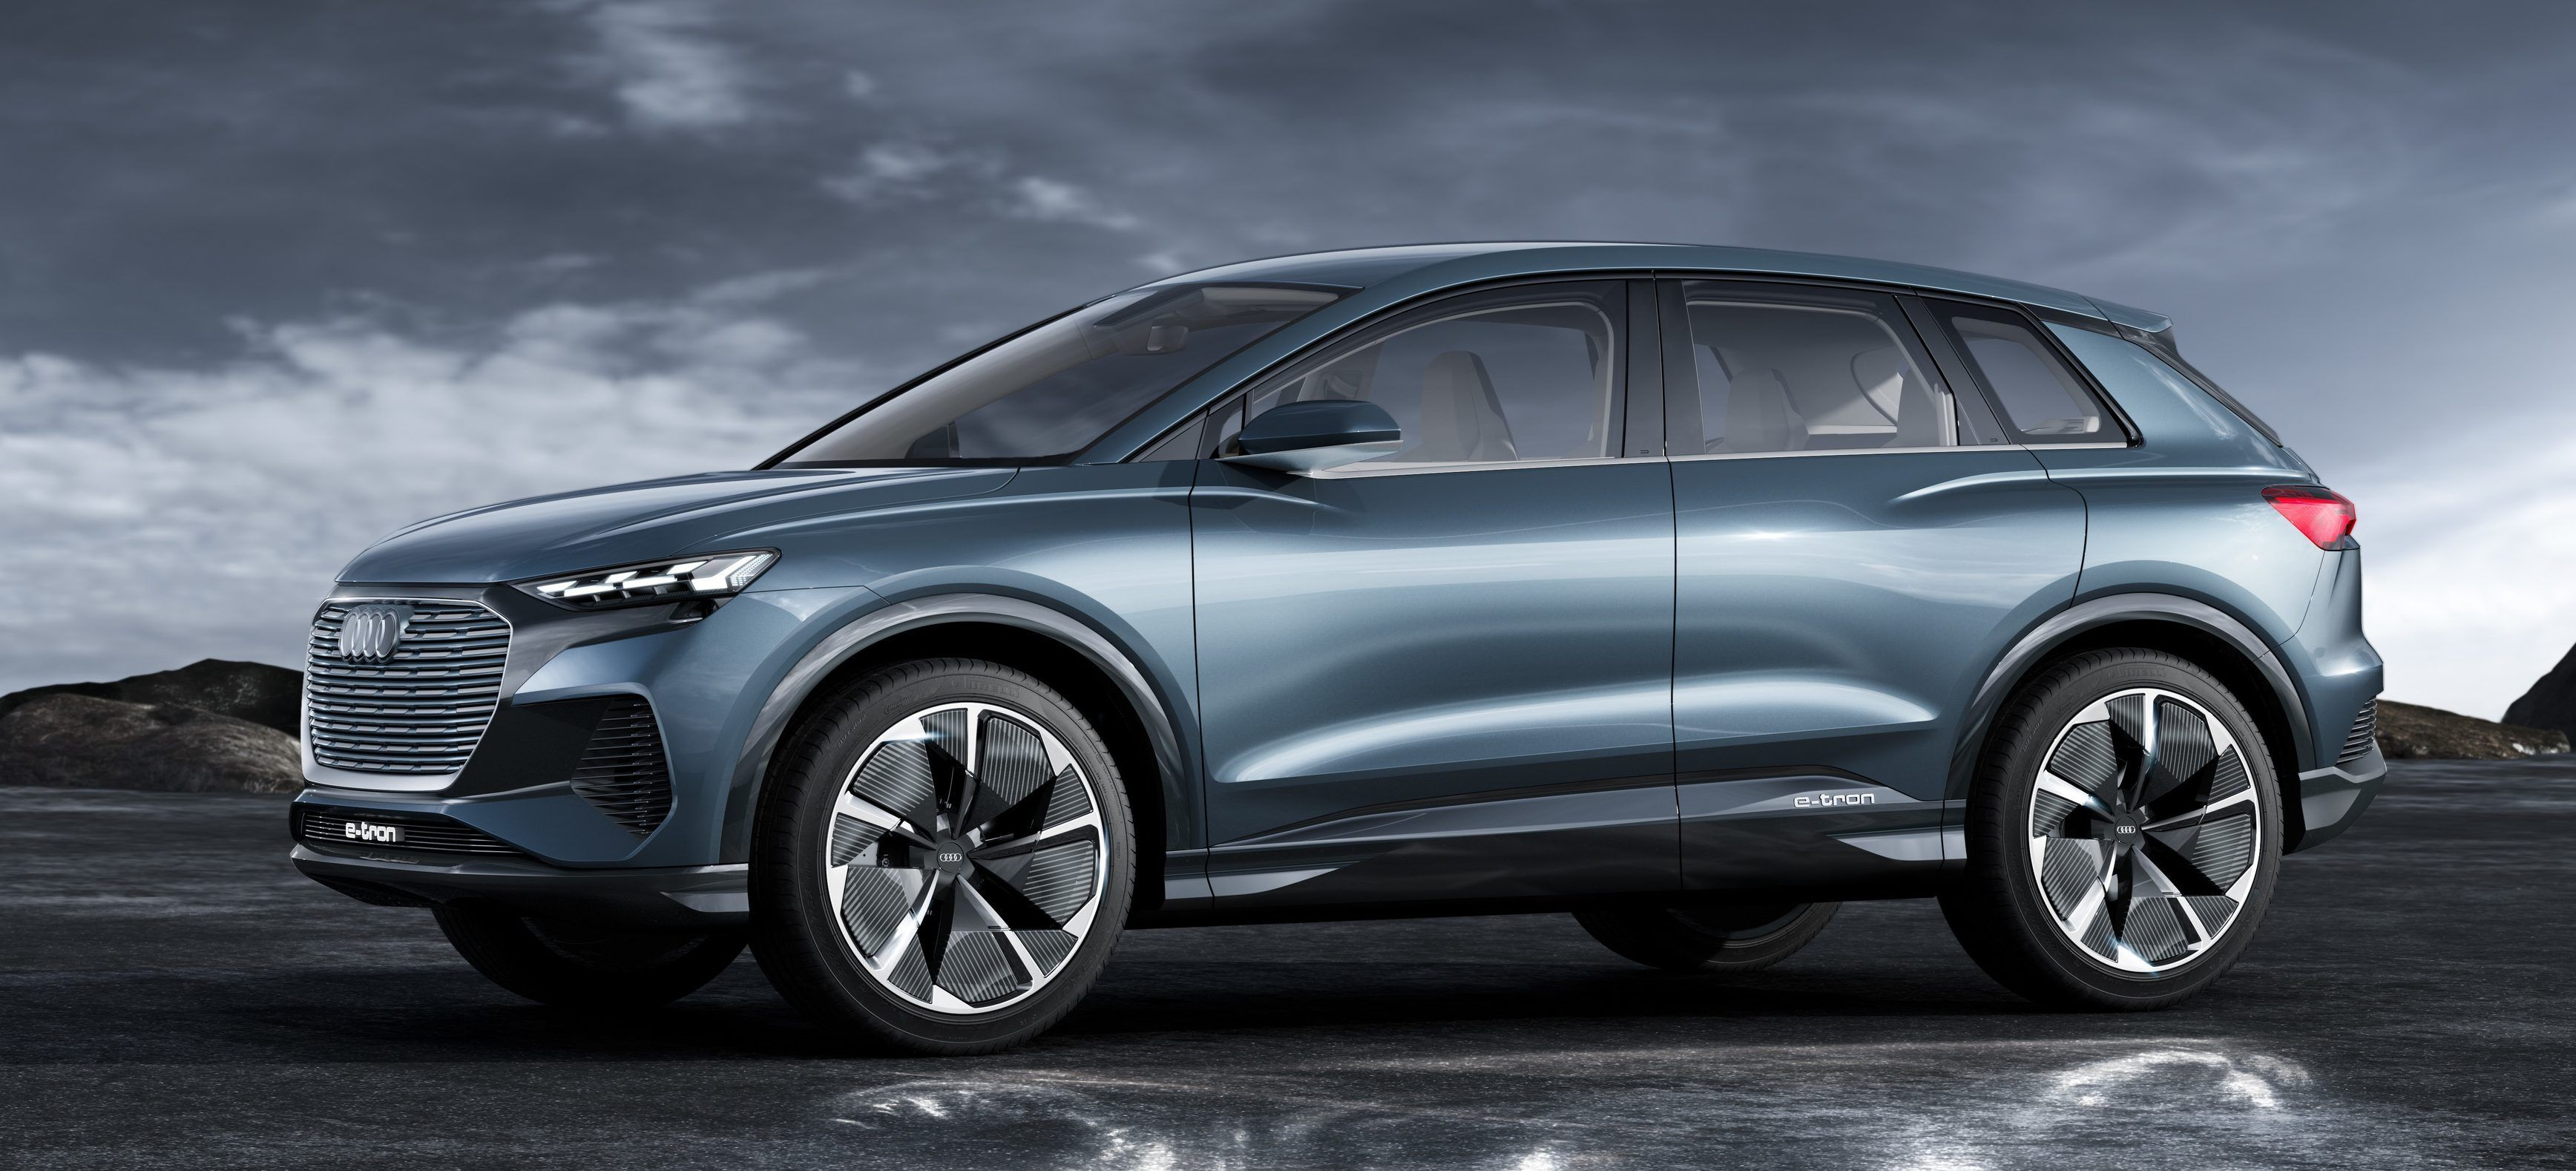 Audi Unveils Small Electric Q4 E Tron Suv With 280 Miles Of Range Audi Q4 Electric Cars Affordable Suv